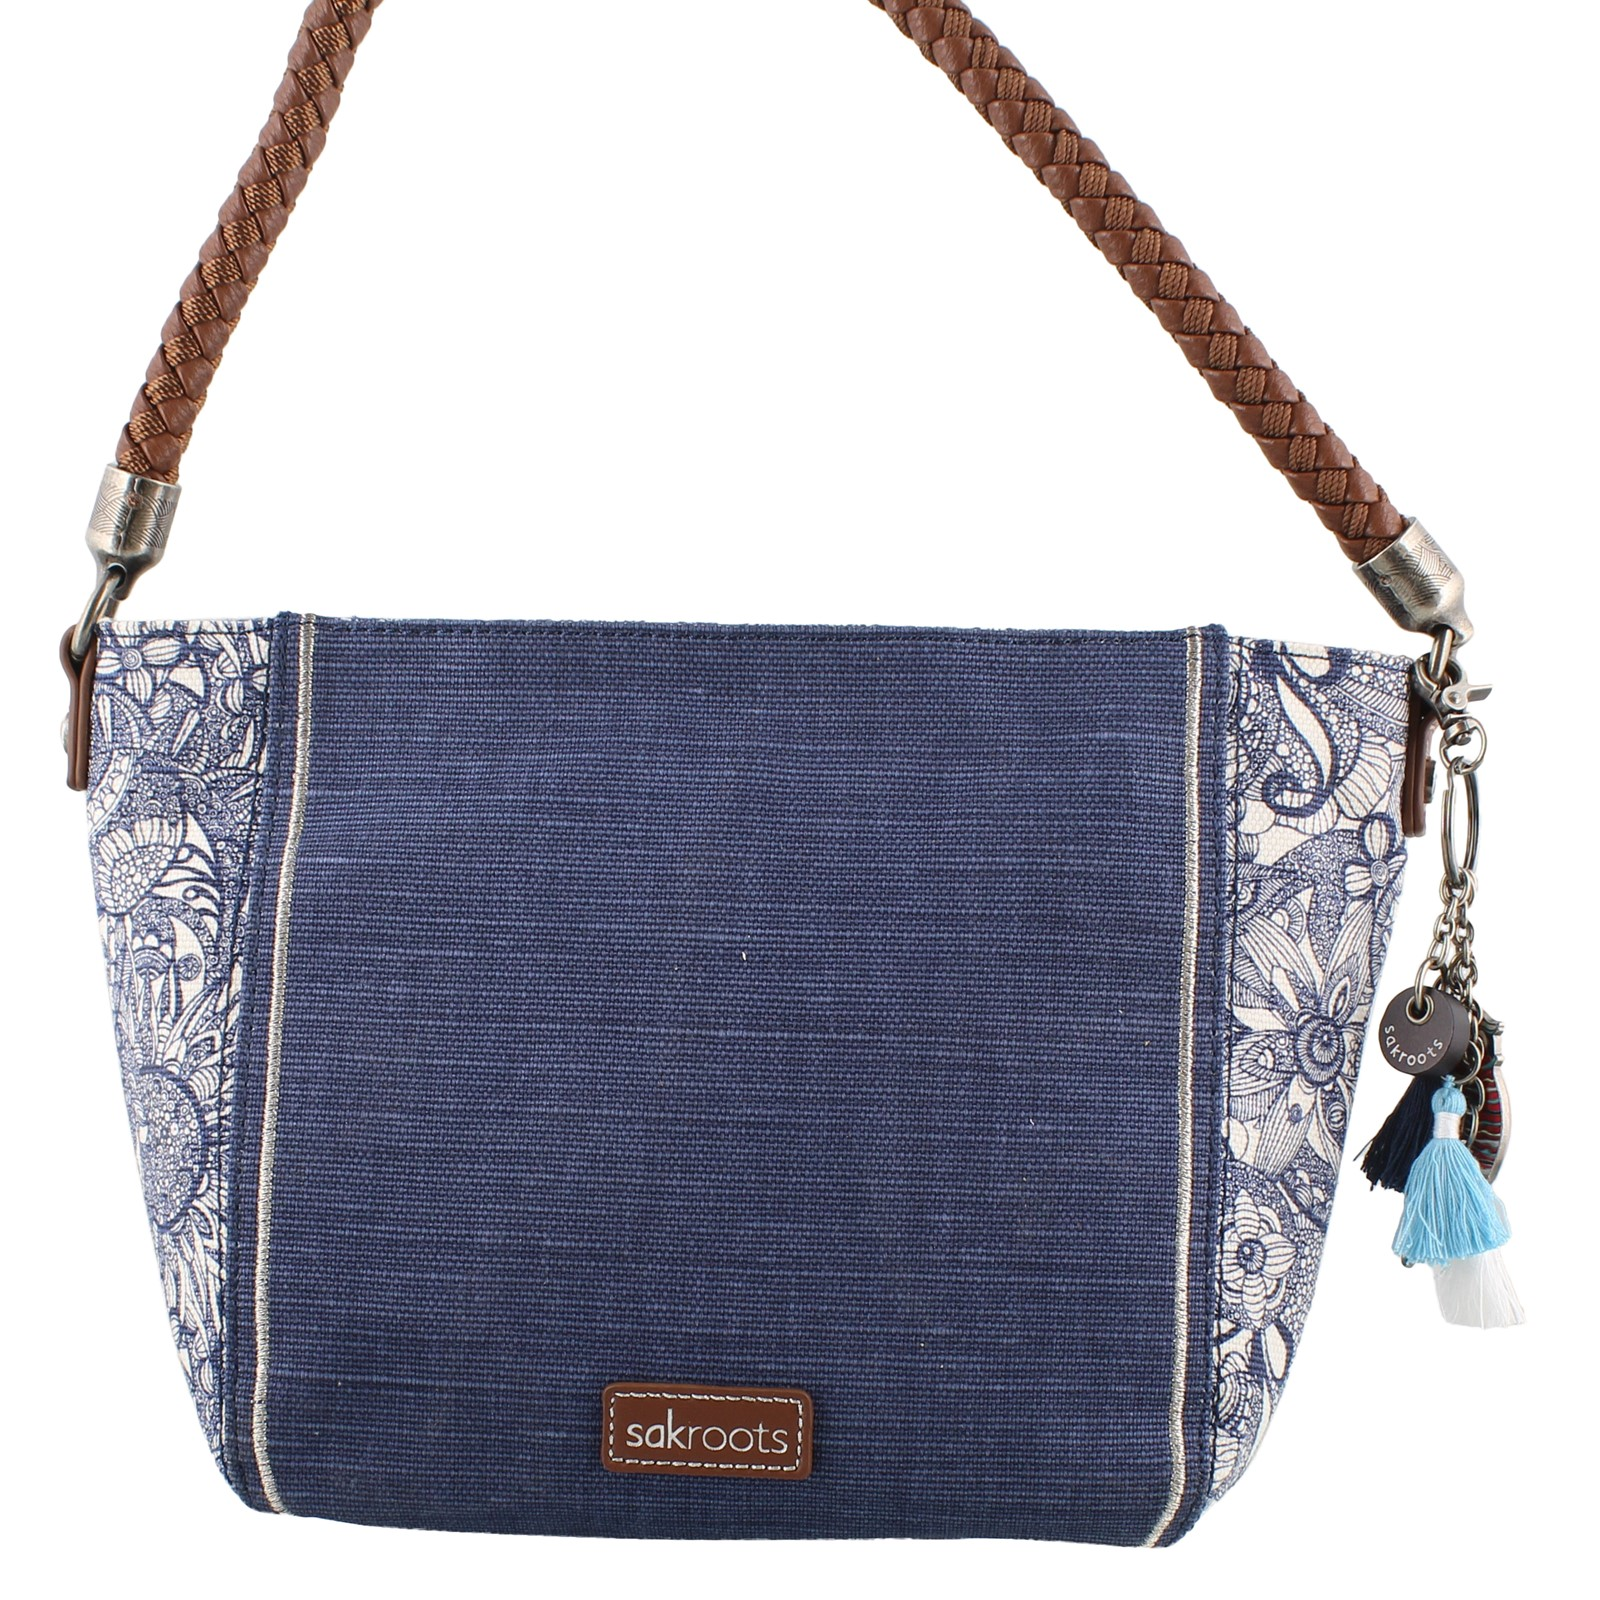 The Sak, Elsa Small Hobo Bag